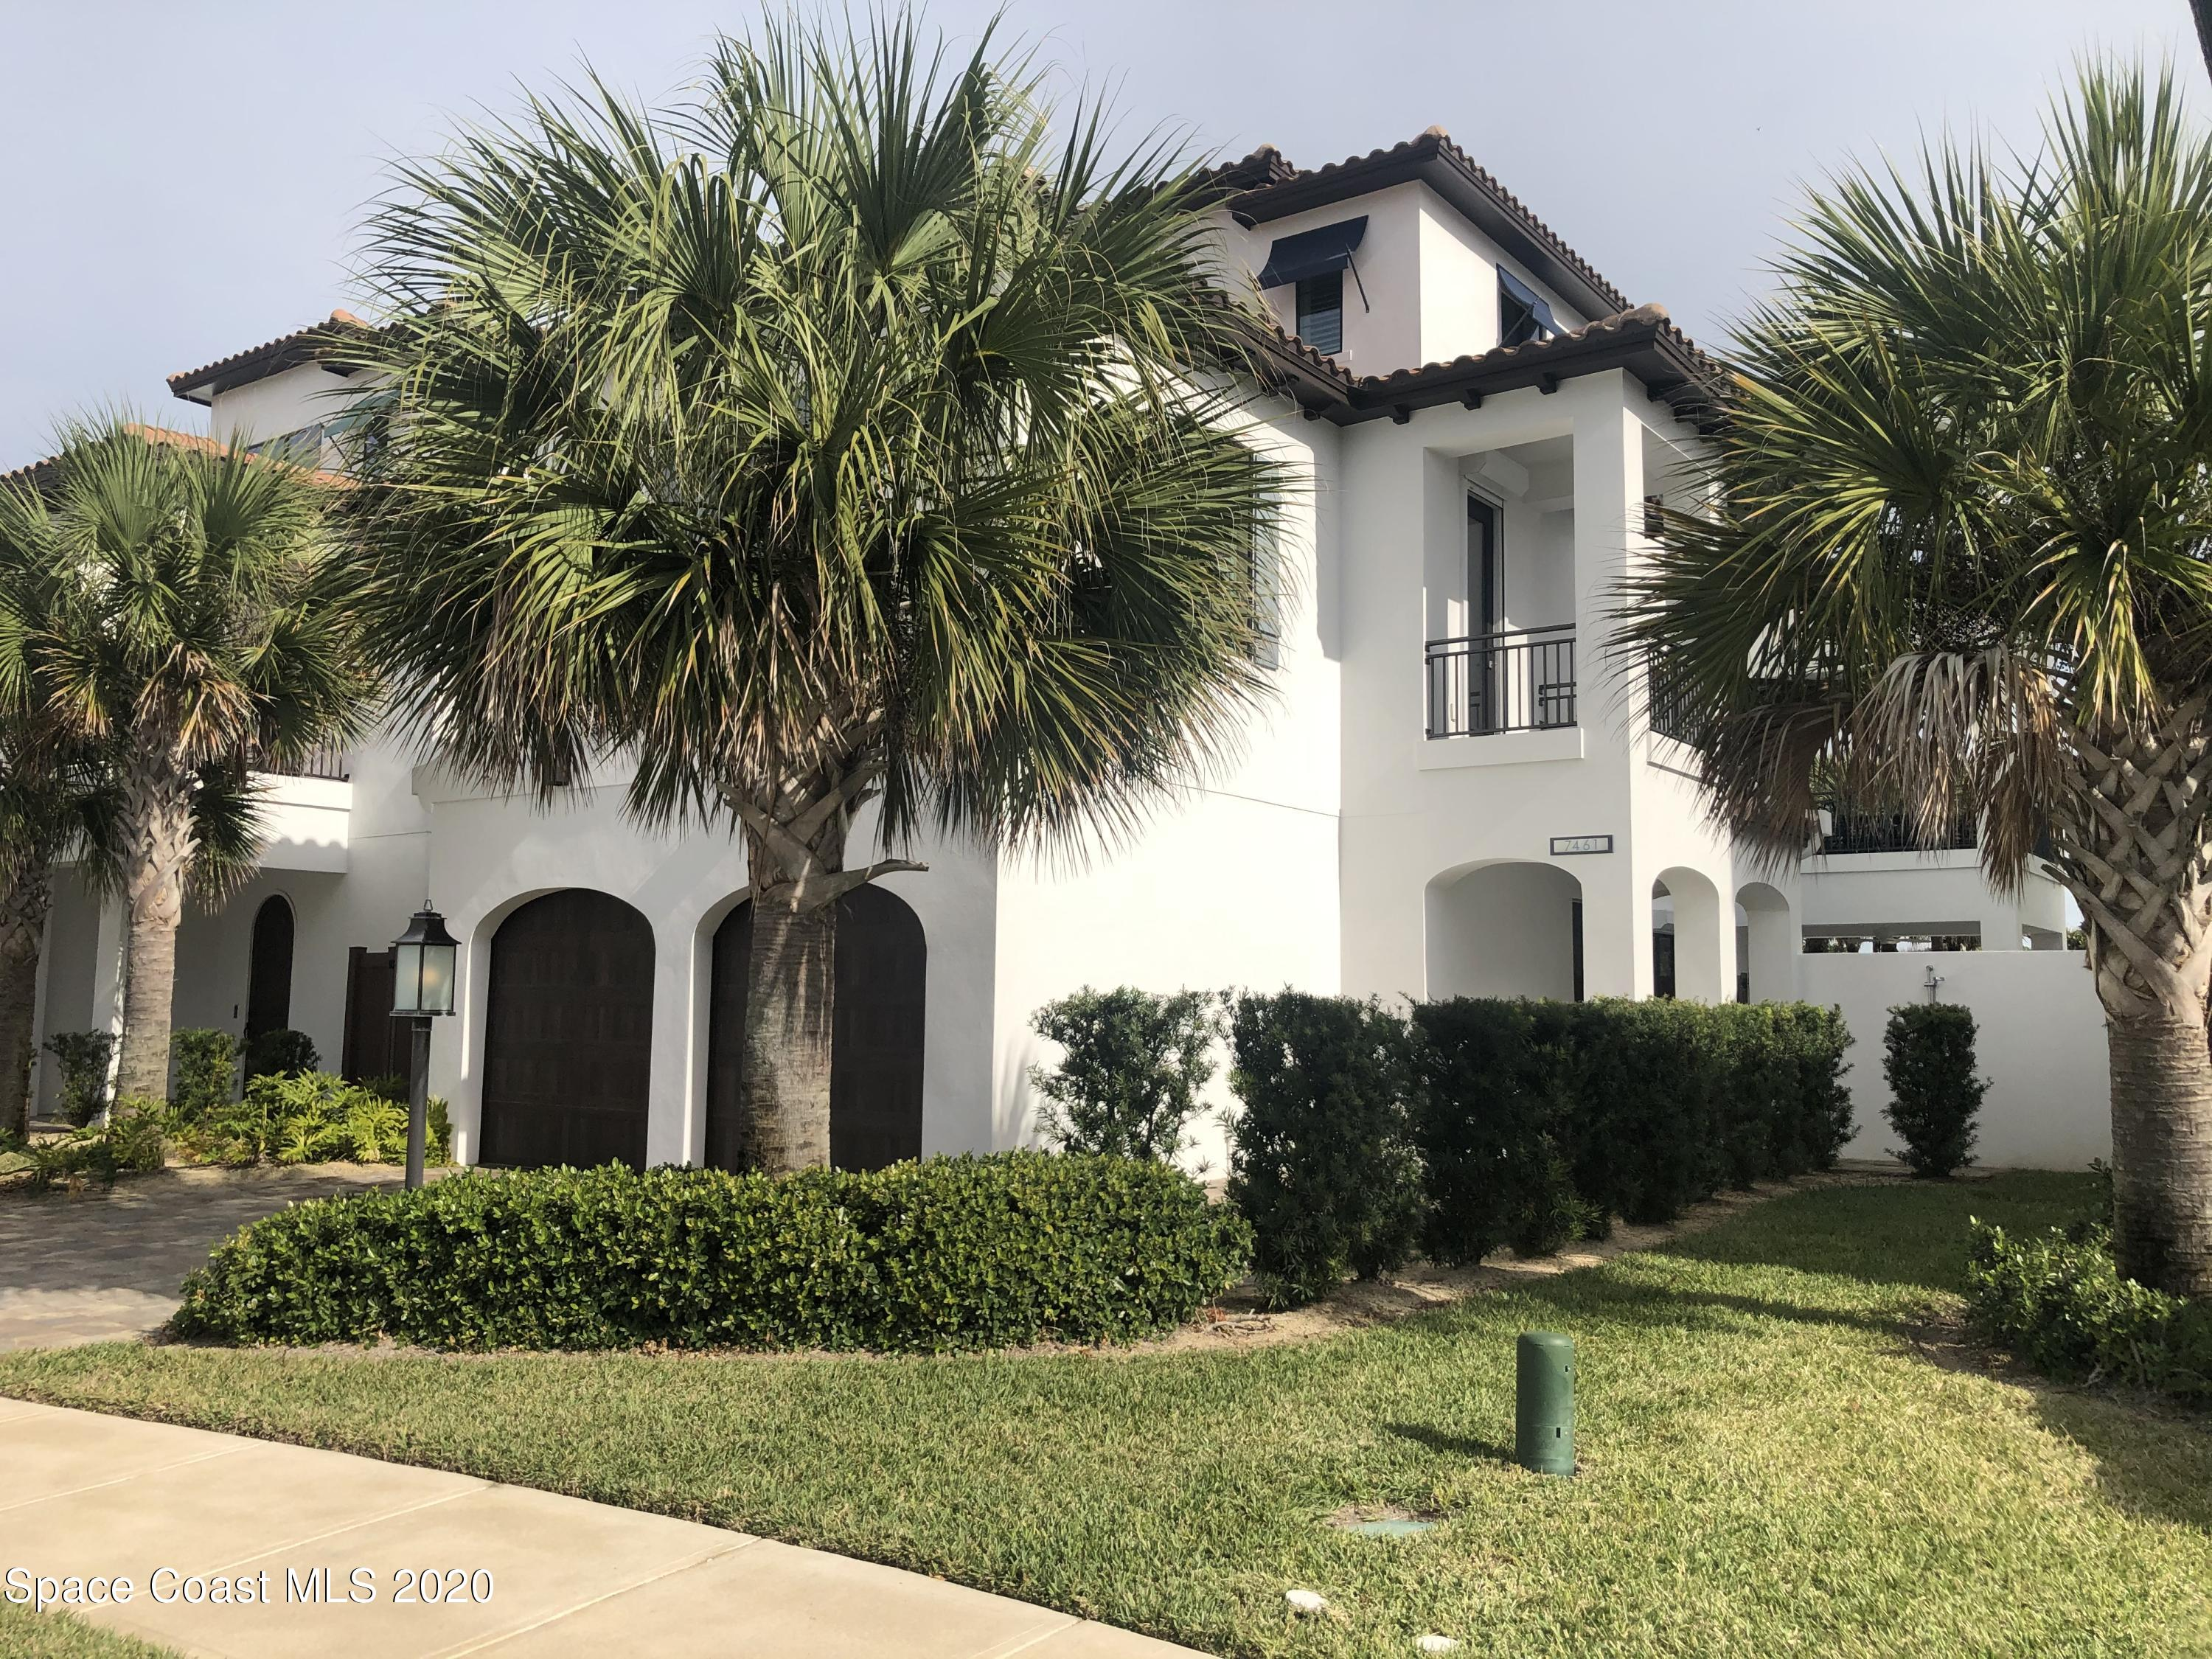 Photo of 7461 Matanilla Reef Way, Melbourne Beach, FL 32951